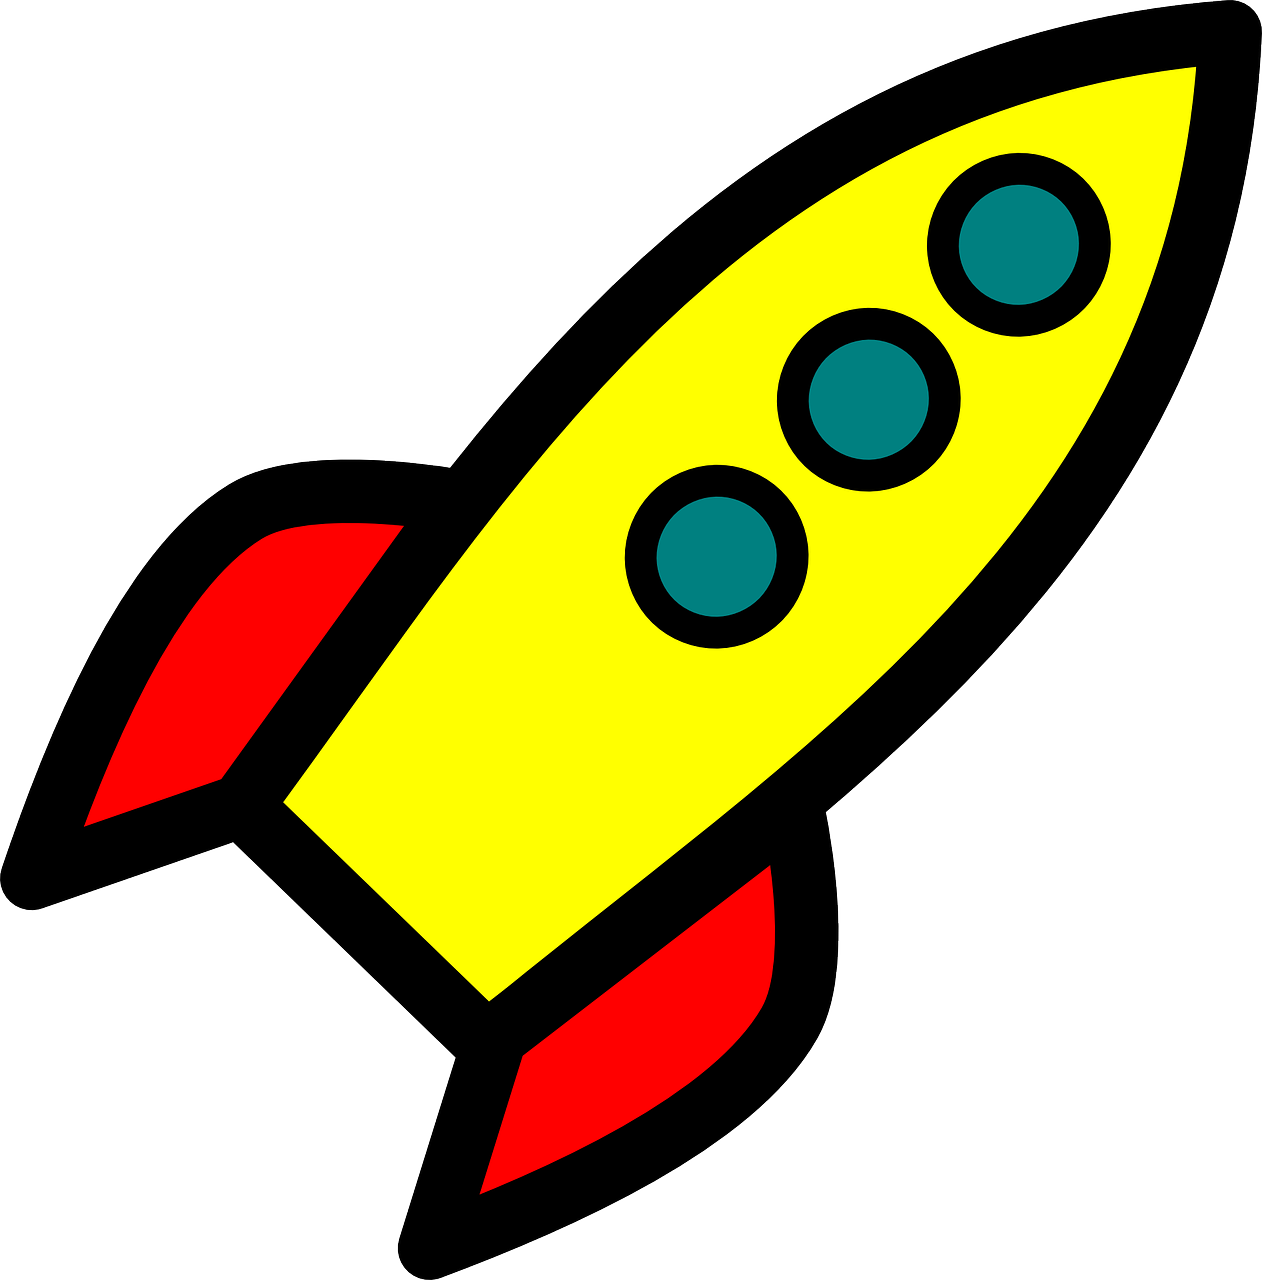 Clipart rocket space transportation. Toy transparent image